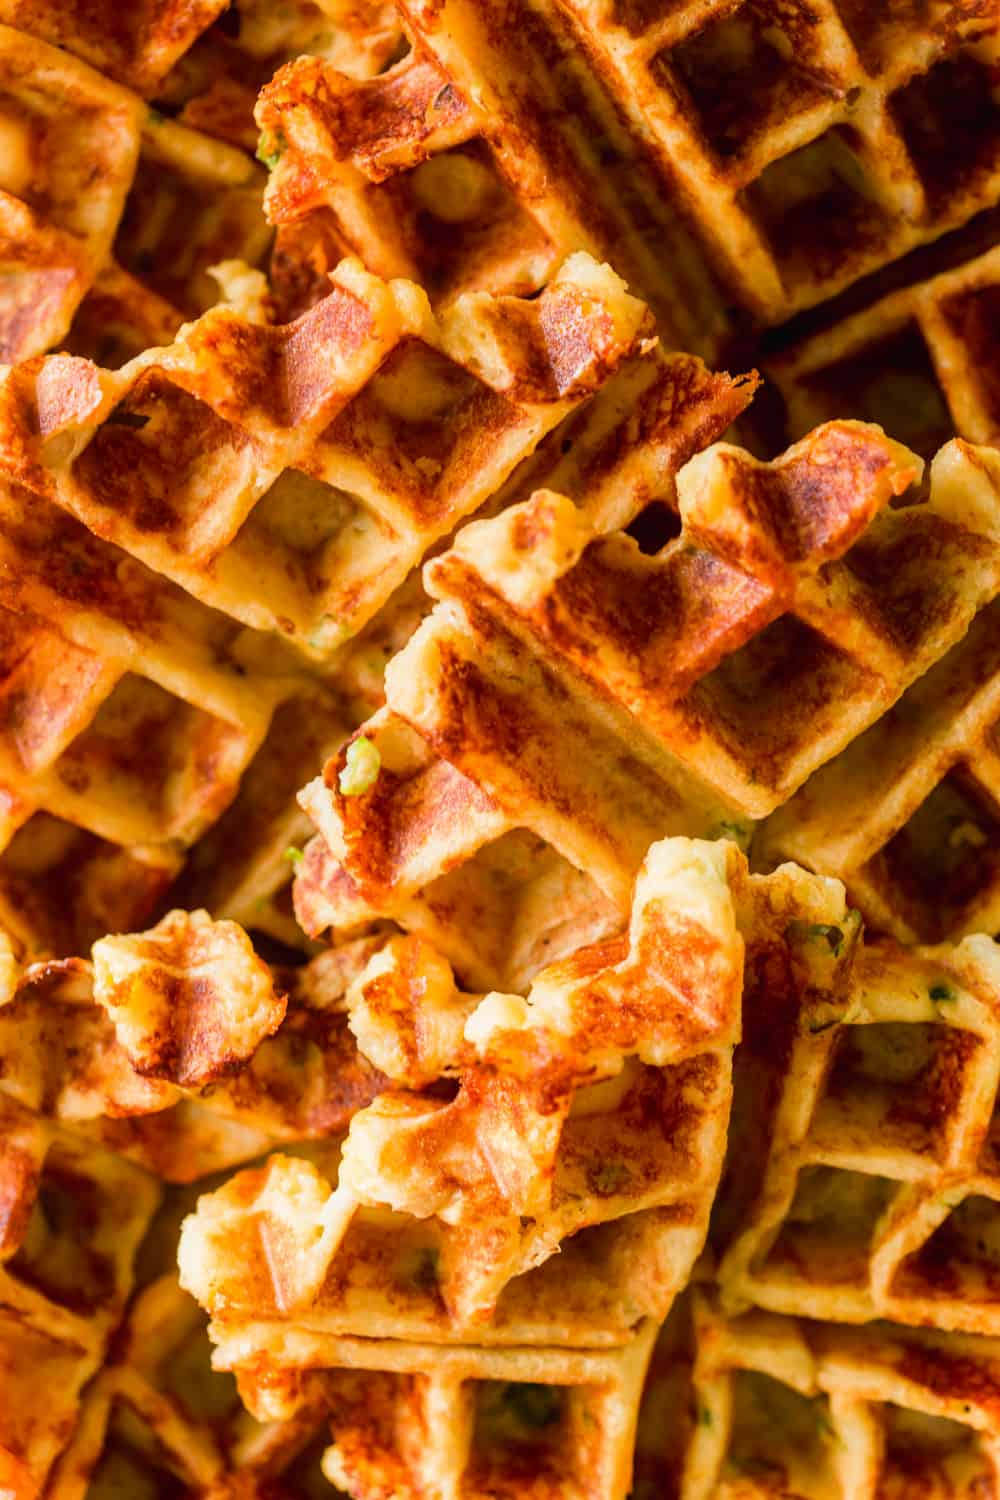 Close up of golden brown cooked waffles